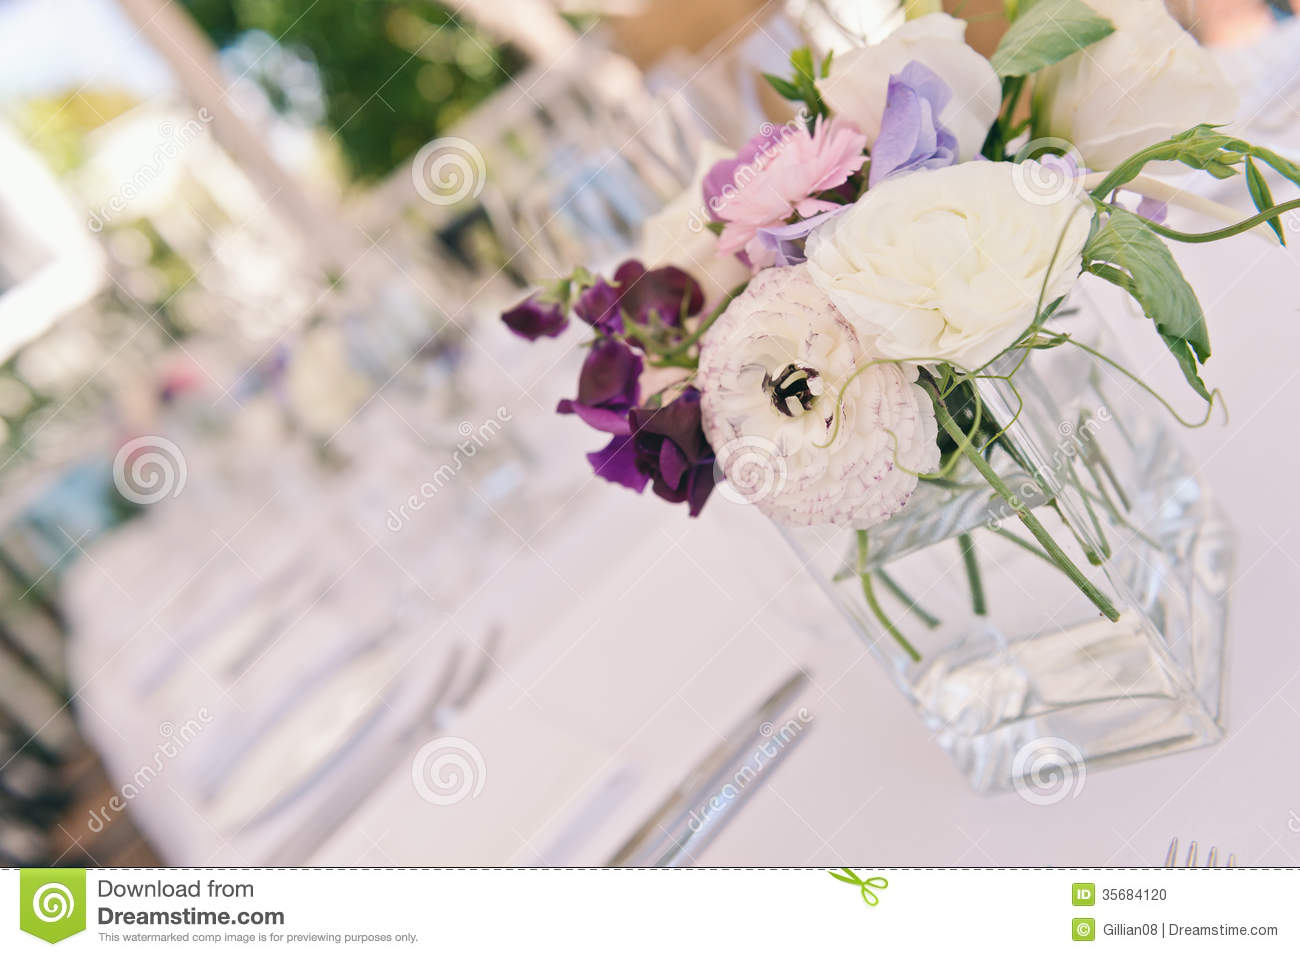 Table Decorations At A Wedding Stock Photo - Image of white, wedding ...